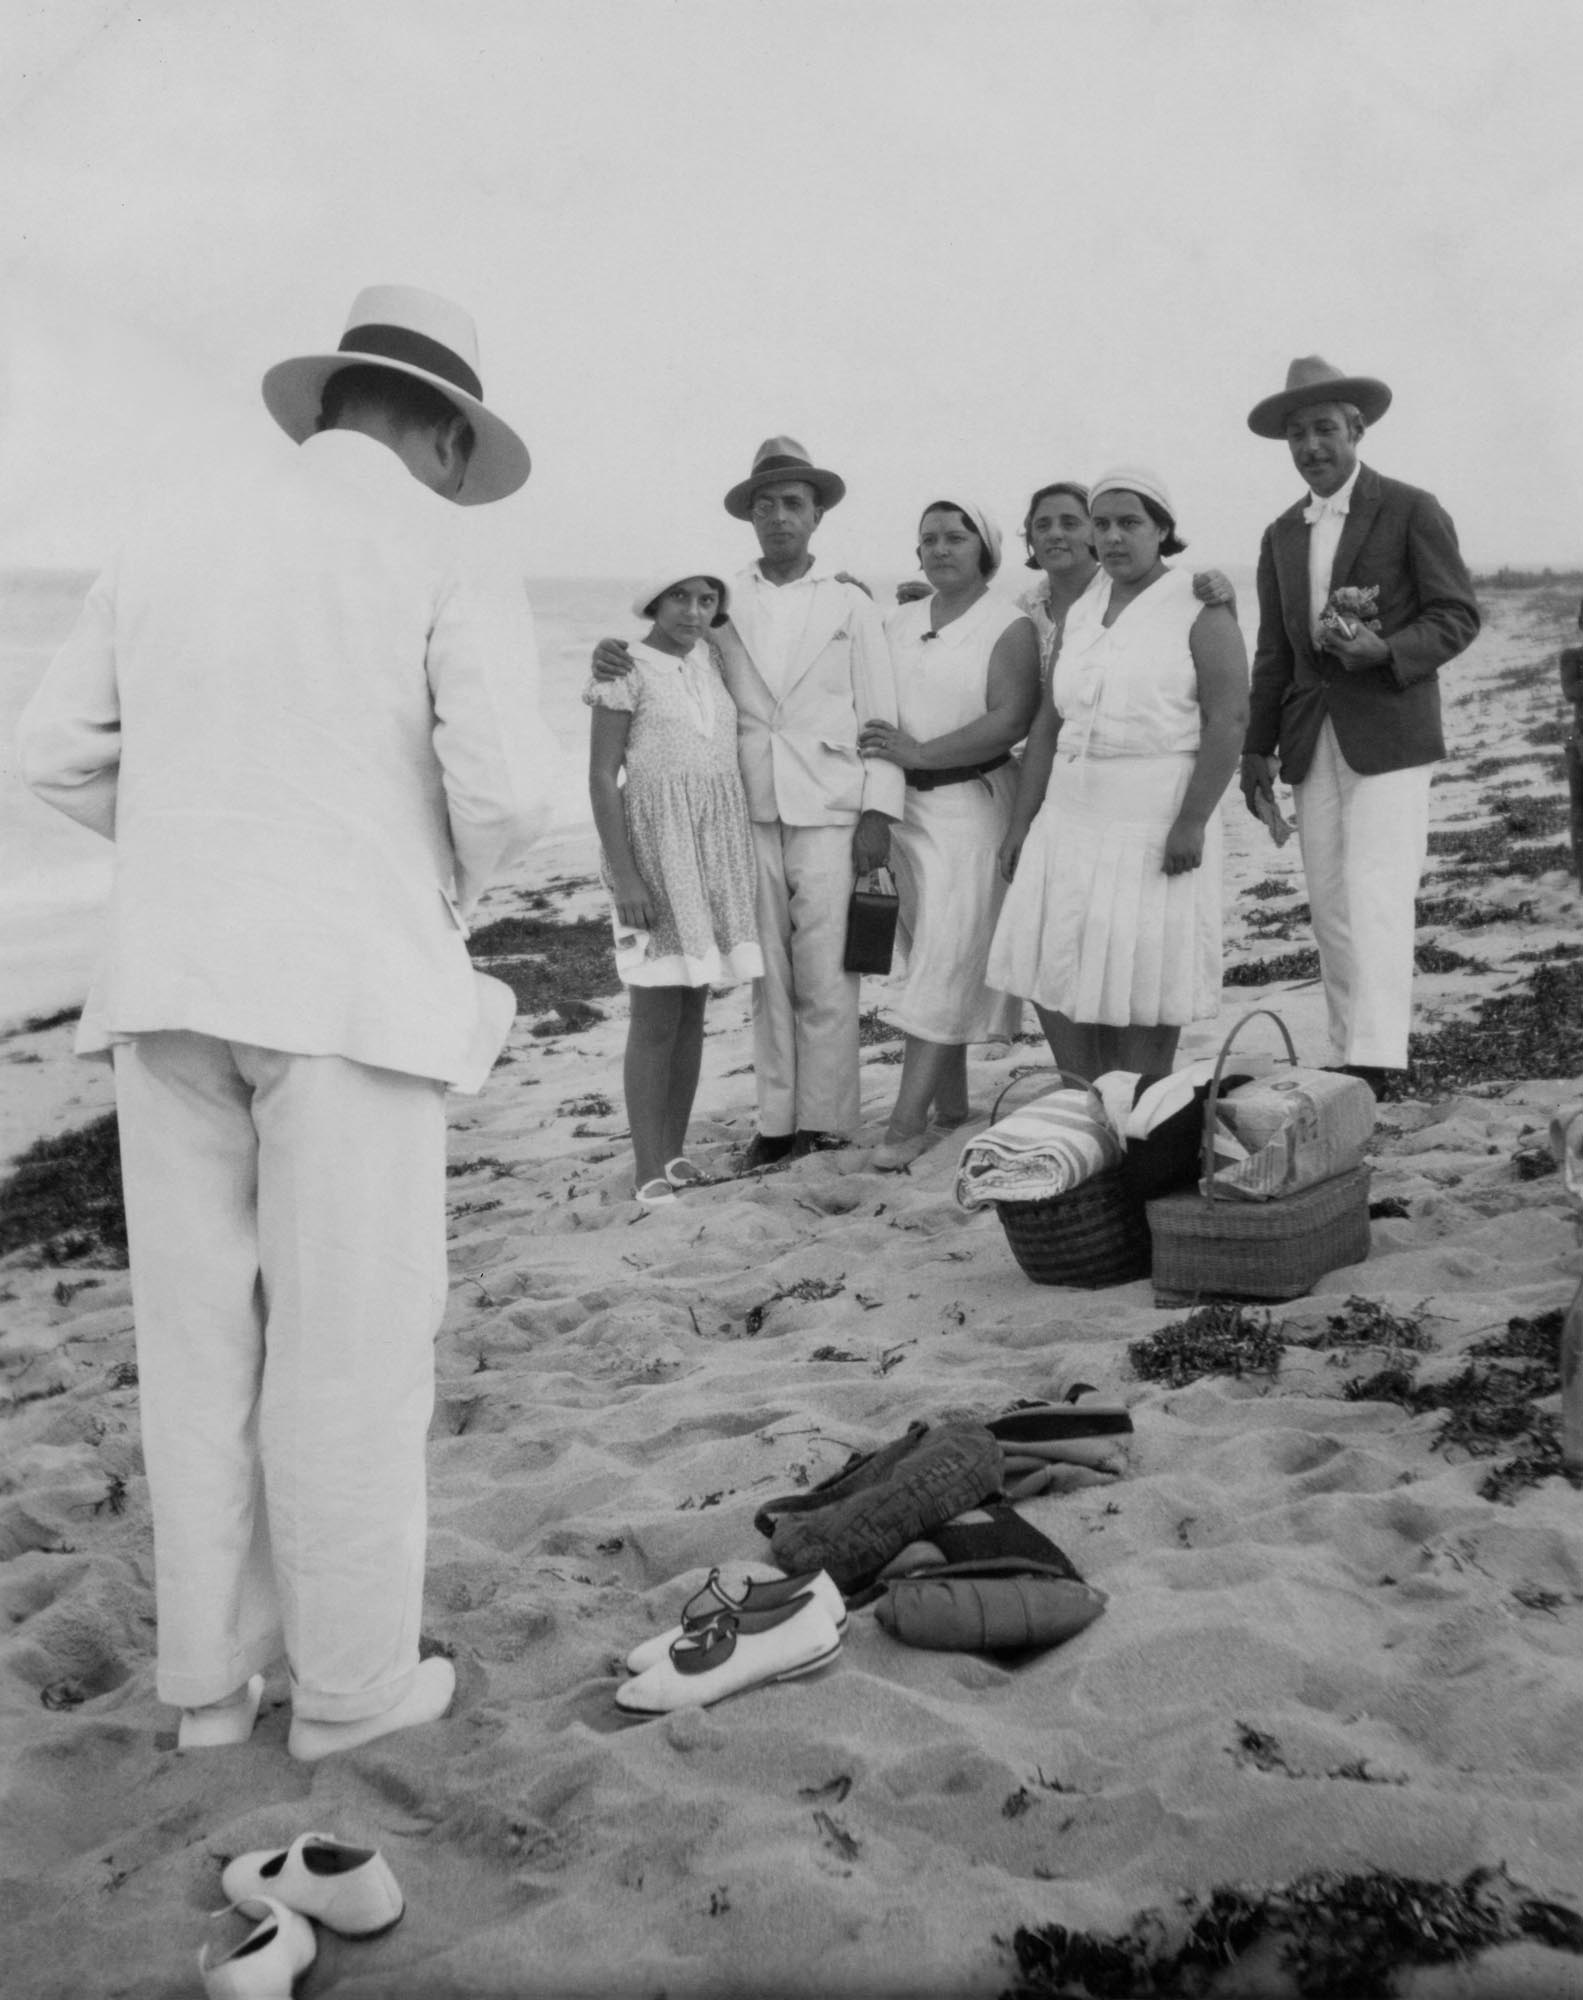 Picnic at the Beach, somewhere in Portugal, circa 1930's